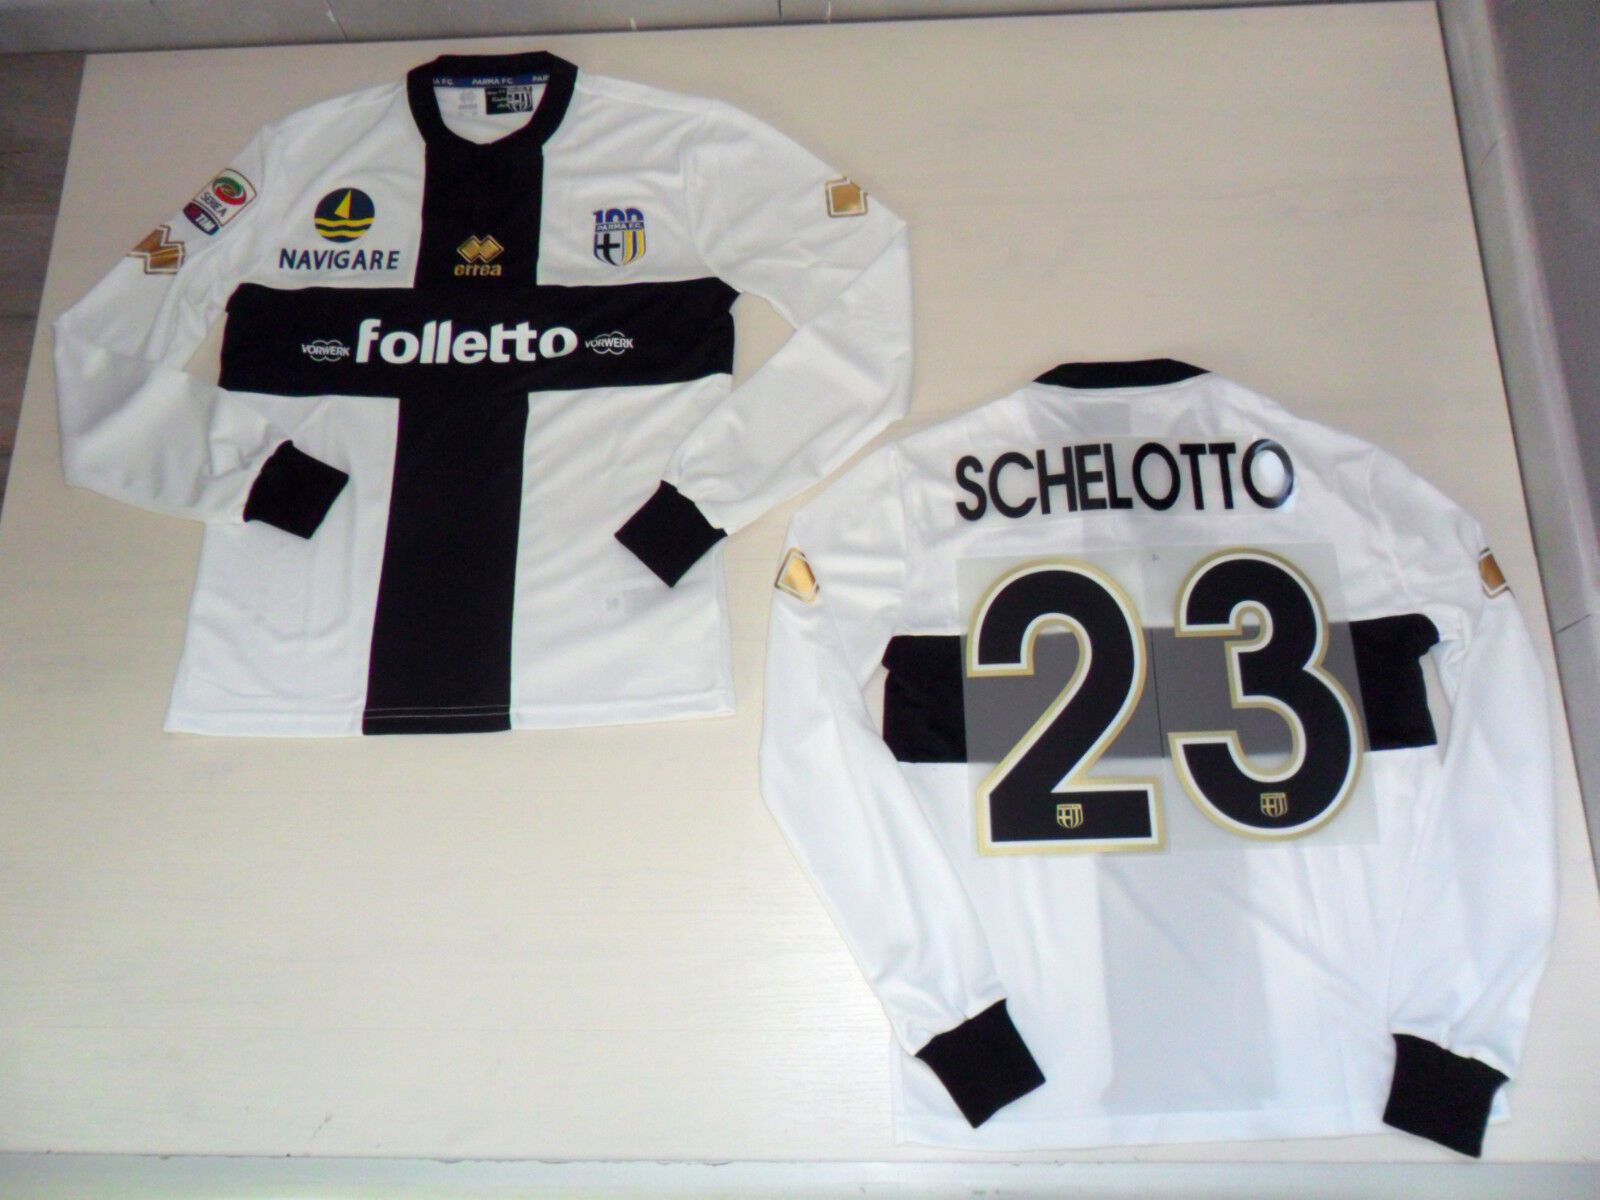 FW13 GRÖßE L SCHELOTTO ISSUE 23 T-SHIRT LANGE ÄRMEL MATCH ISSUE SCHELOTTO TRIKOT JERSEY b9c338